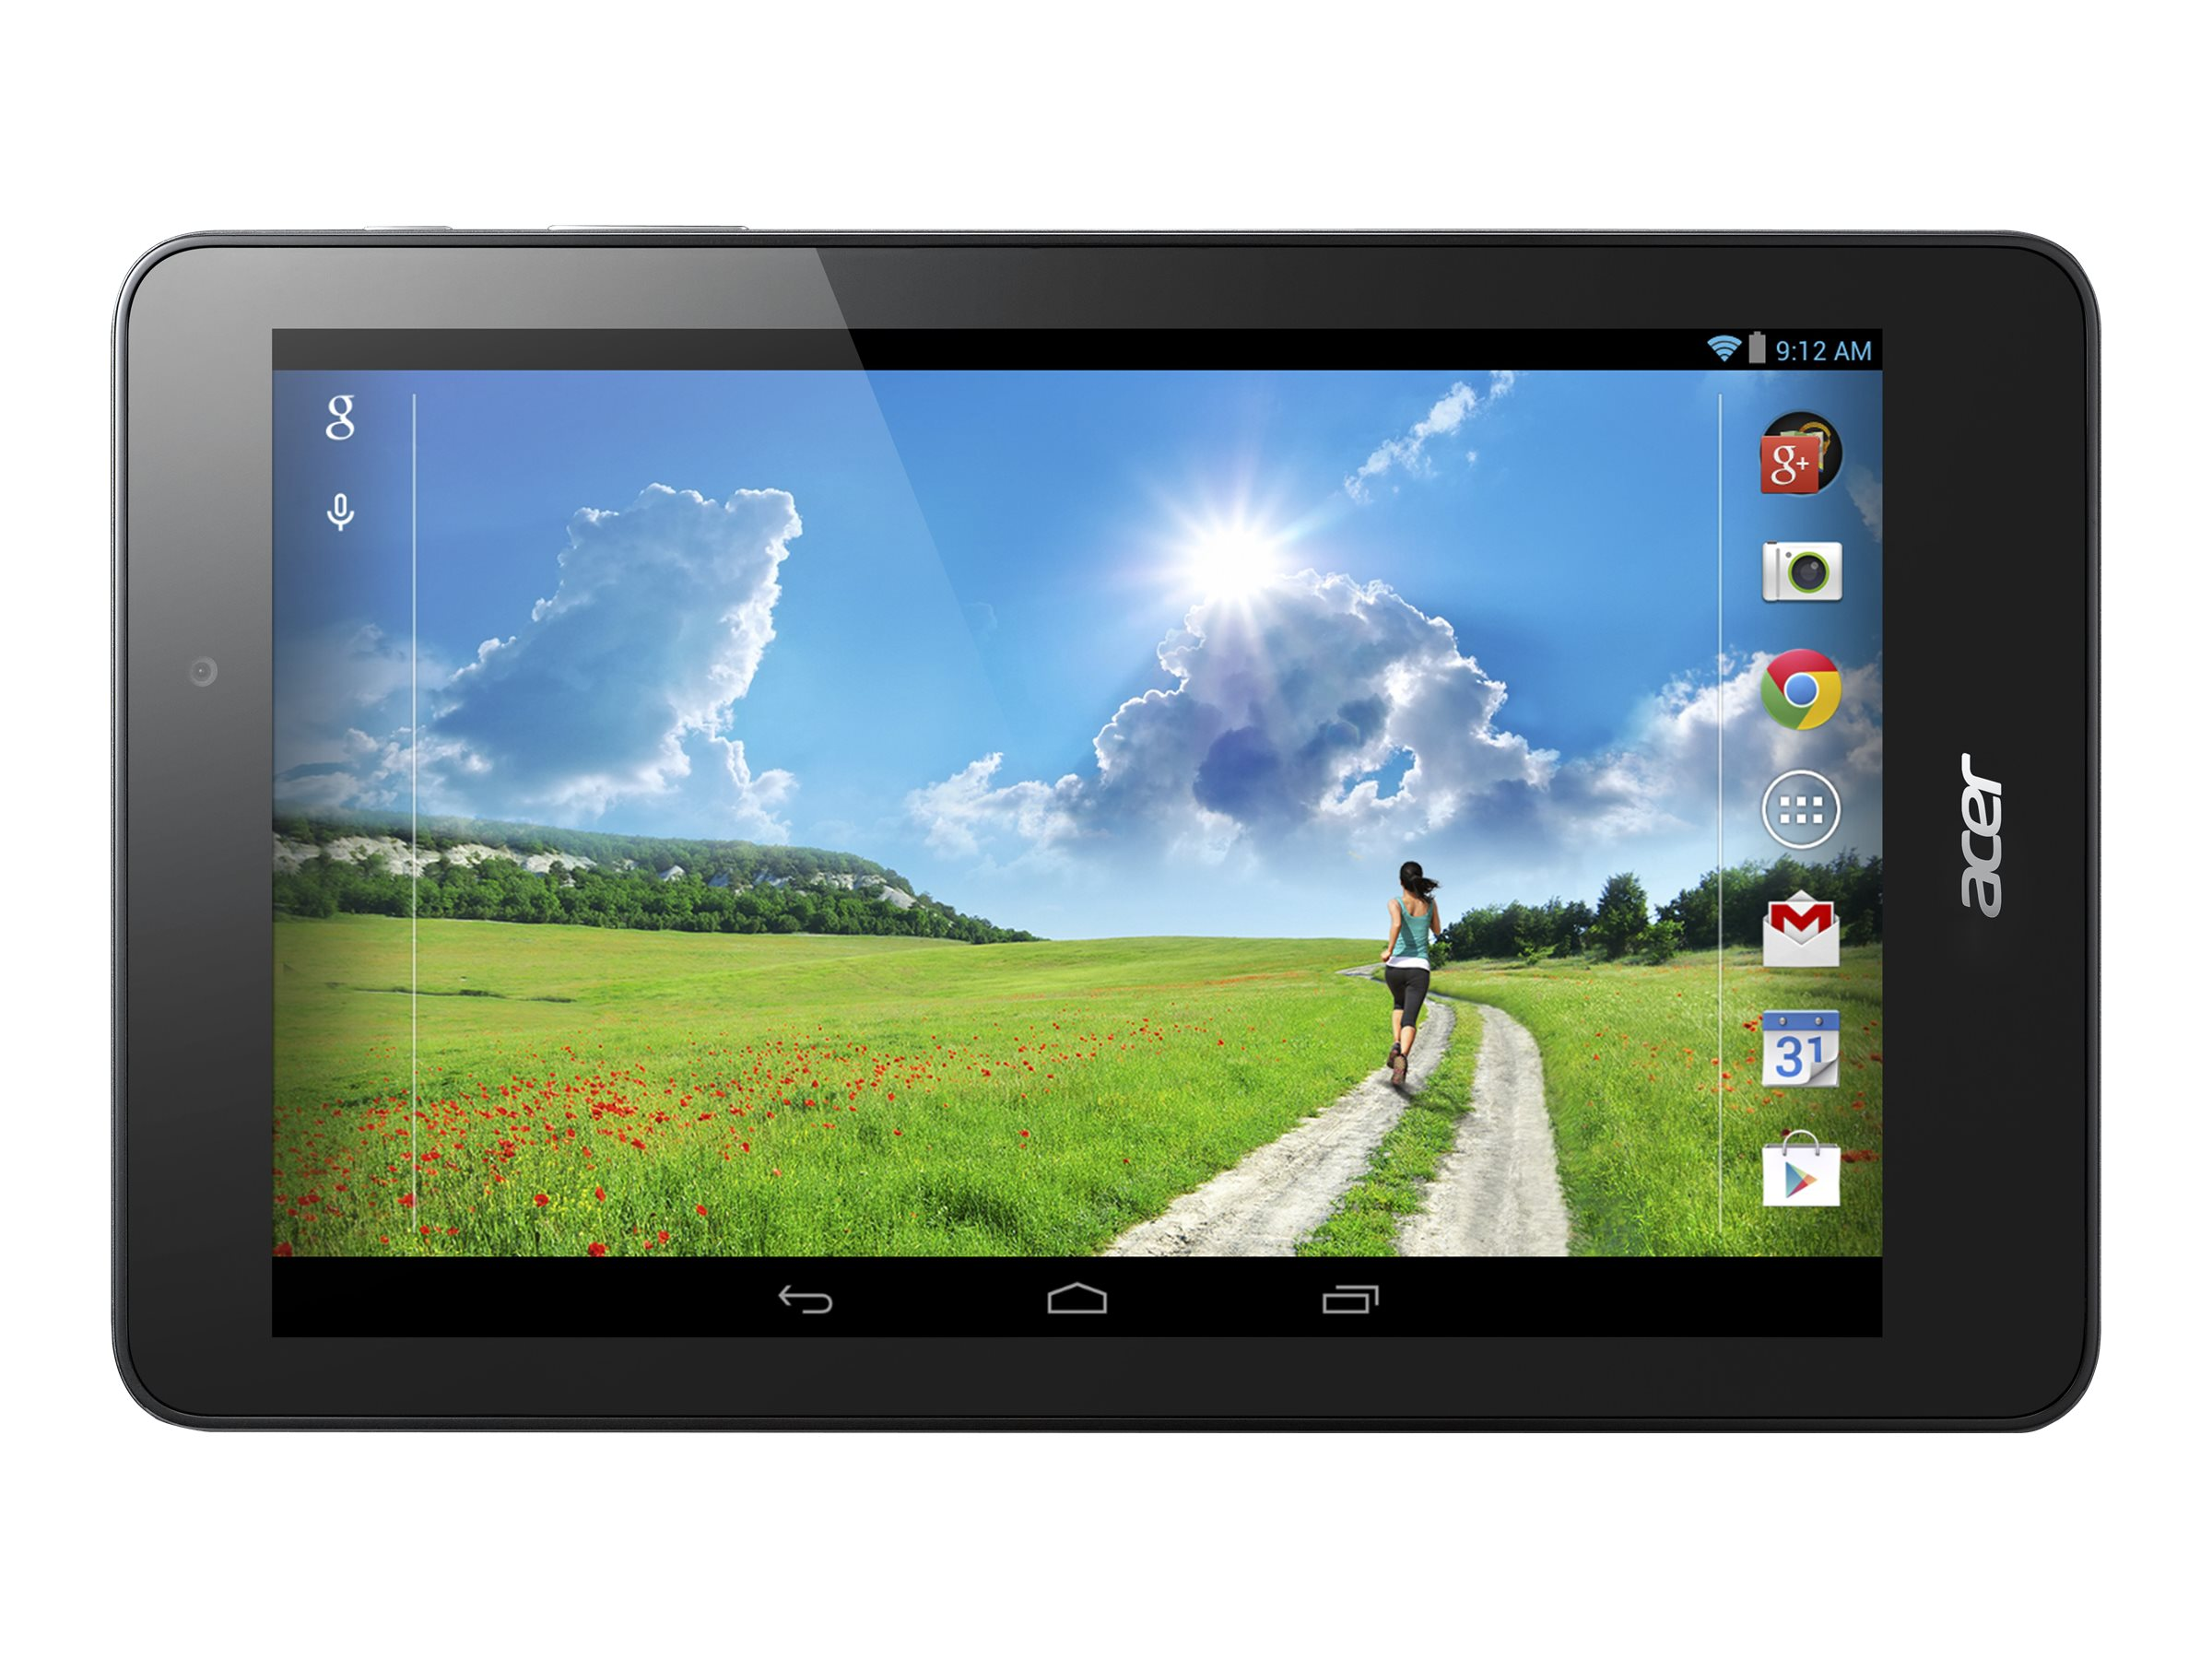 Acer Iconia One B1-810-1193 1.33GHz processor Android 4.4 (KitKat)